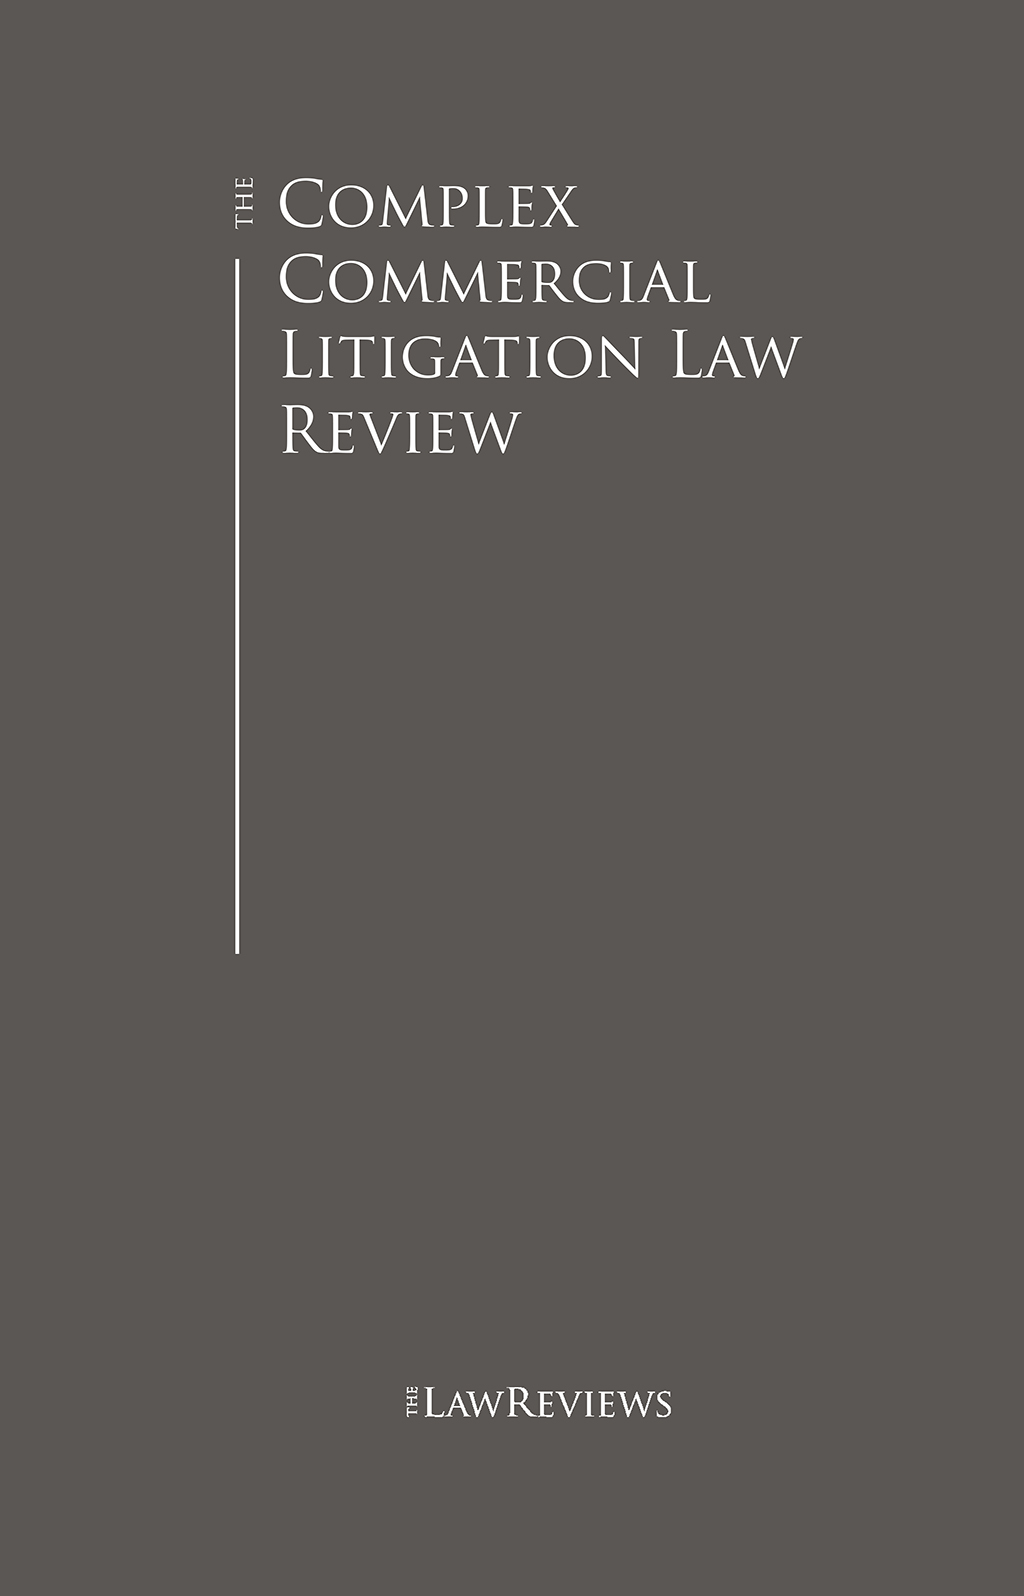 The Complex Commercial Litigation Law Review